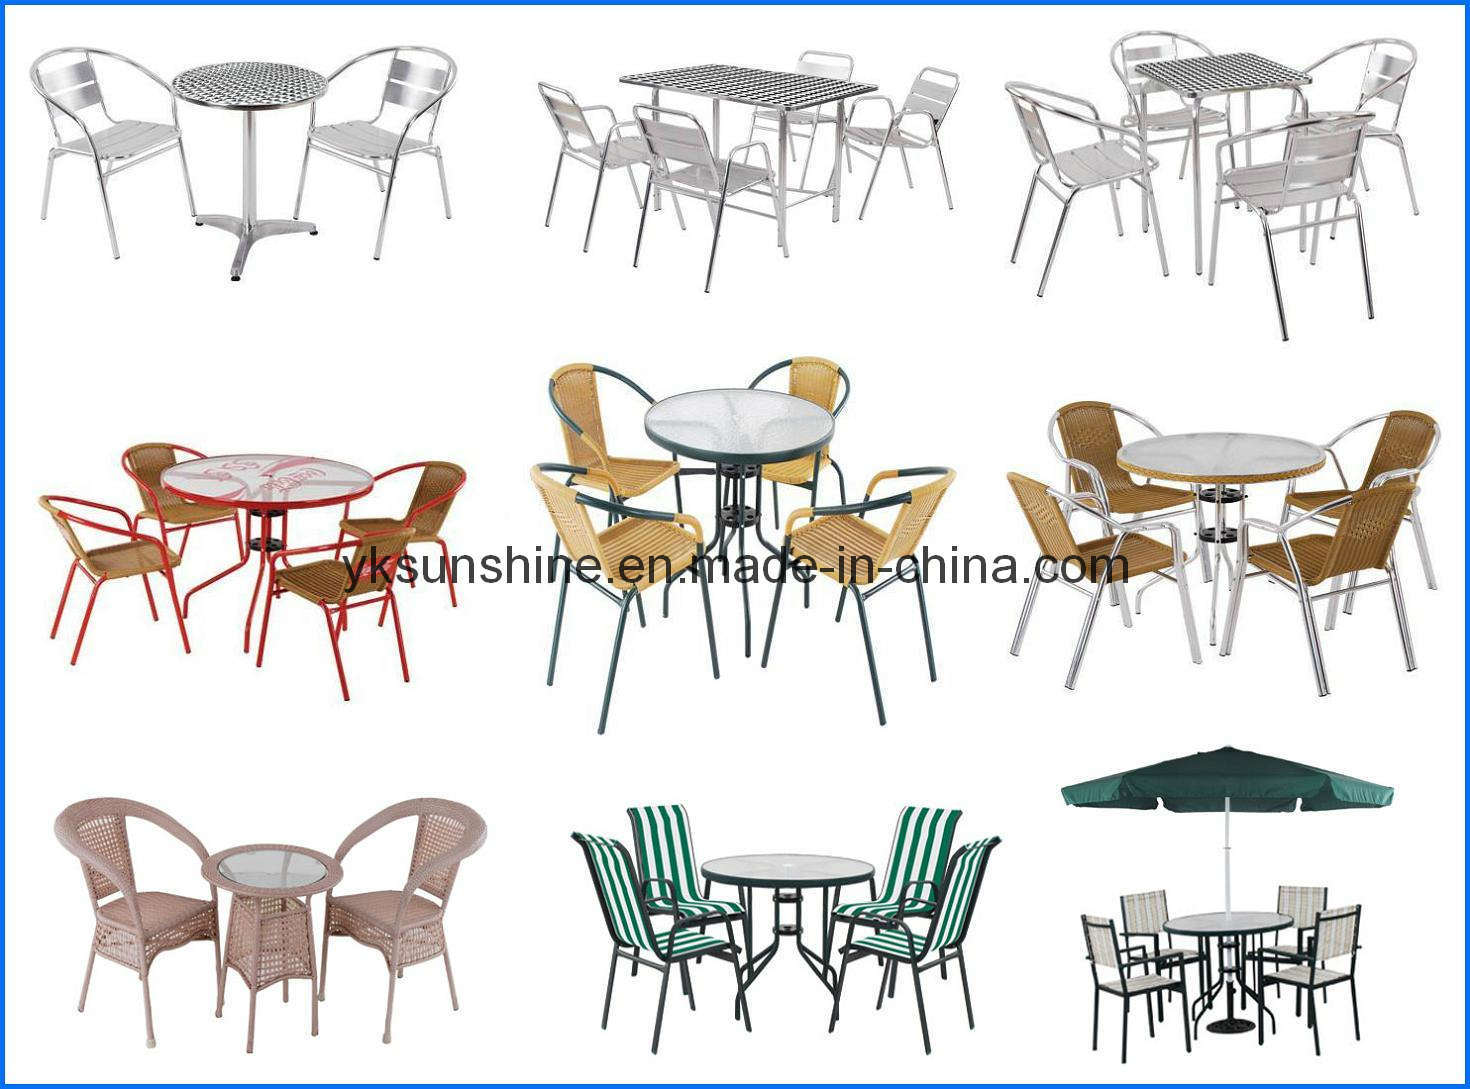 Aluminum Table and Chair (XY-701)